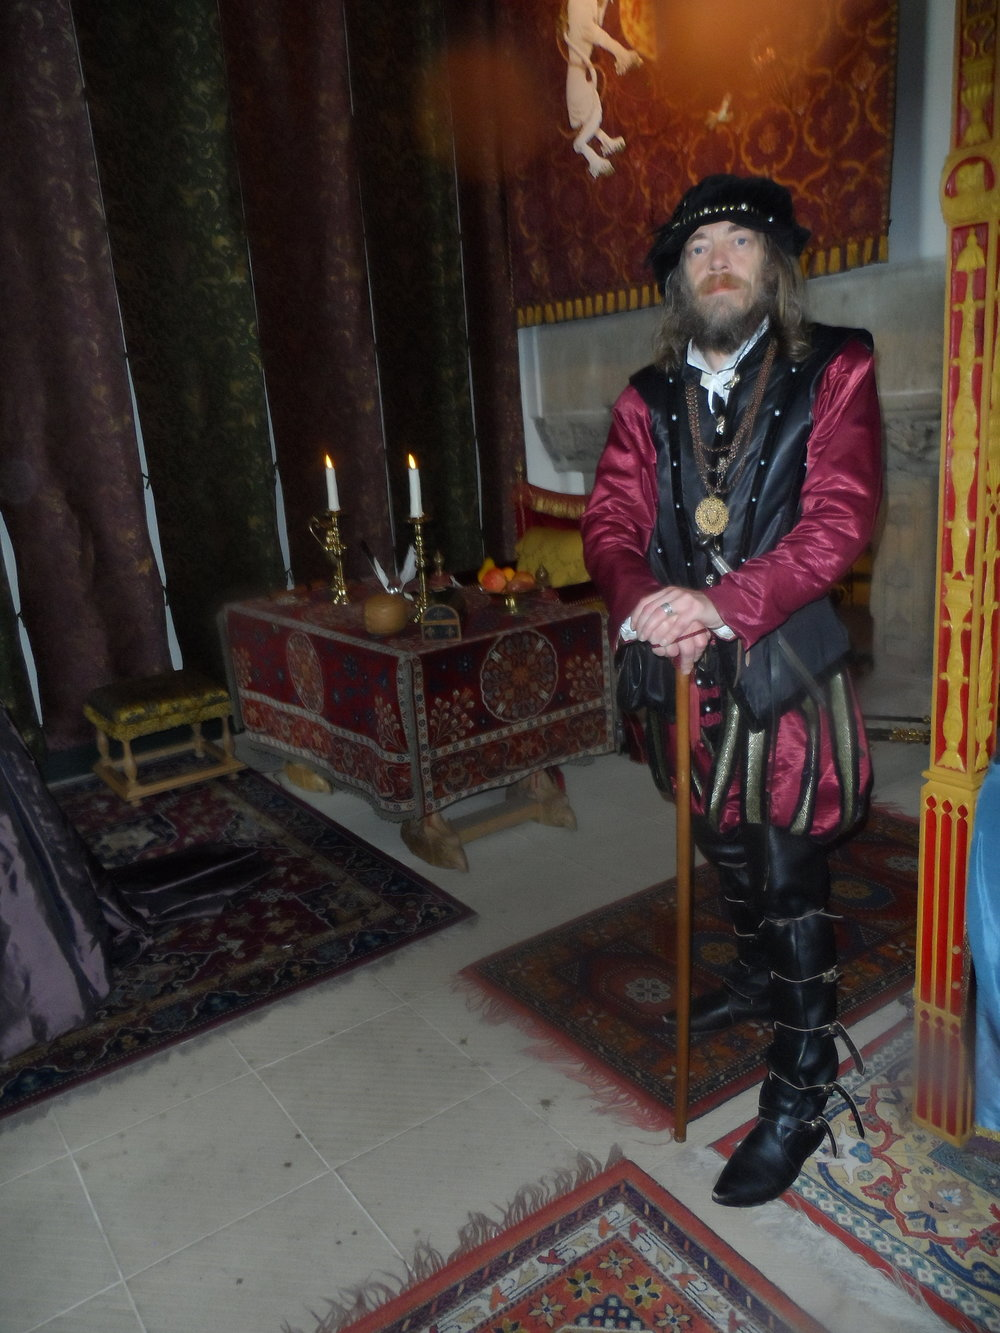 One of several period actors in Stirling Castle